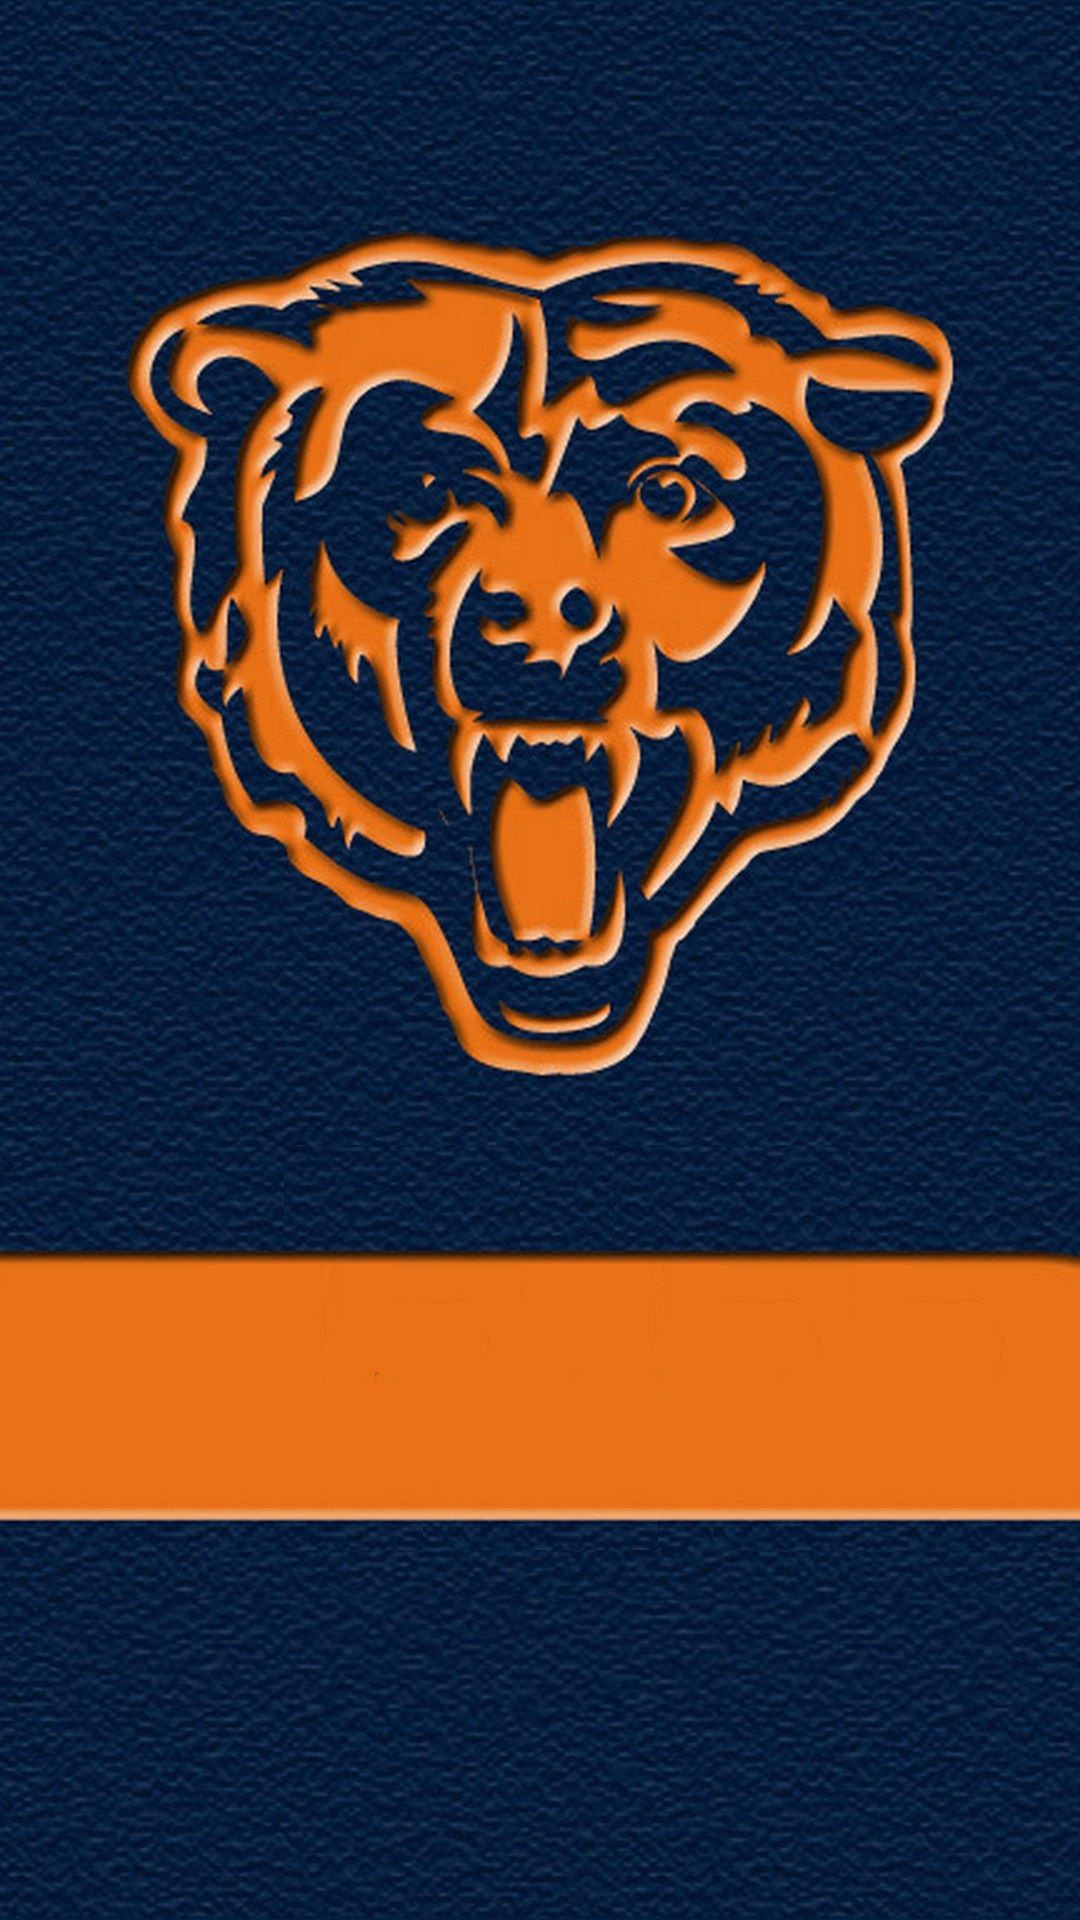 Chicago Bears Iphone 7 Wallpaper With High Resolution 1080x1920 Pixel Download And Set As Wallpaper F Nfl Wallpaper Chicago Bears Wallpaper Chicago Bears Logo